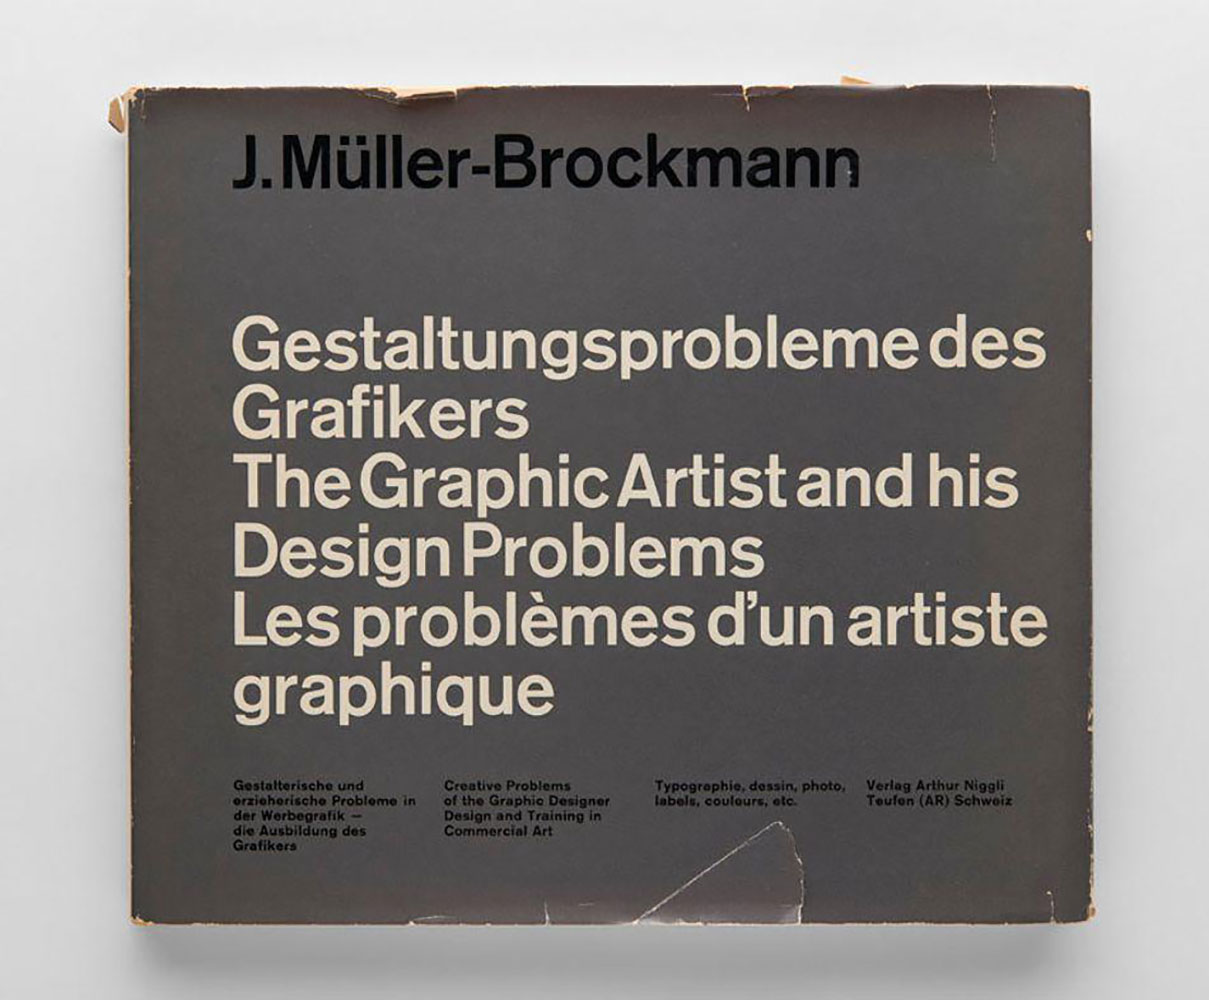 『The Graphic Artist and his Design Problems』